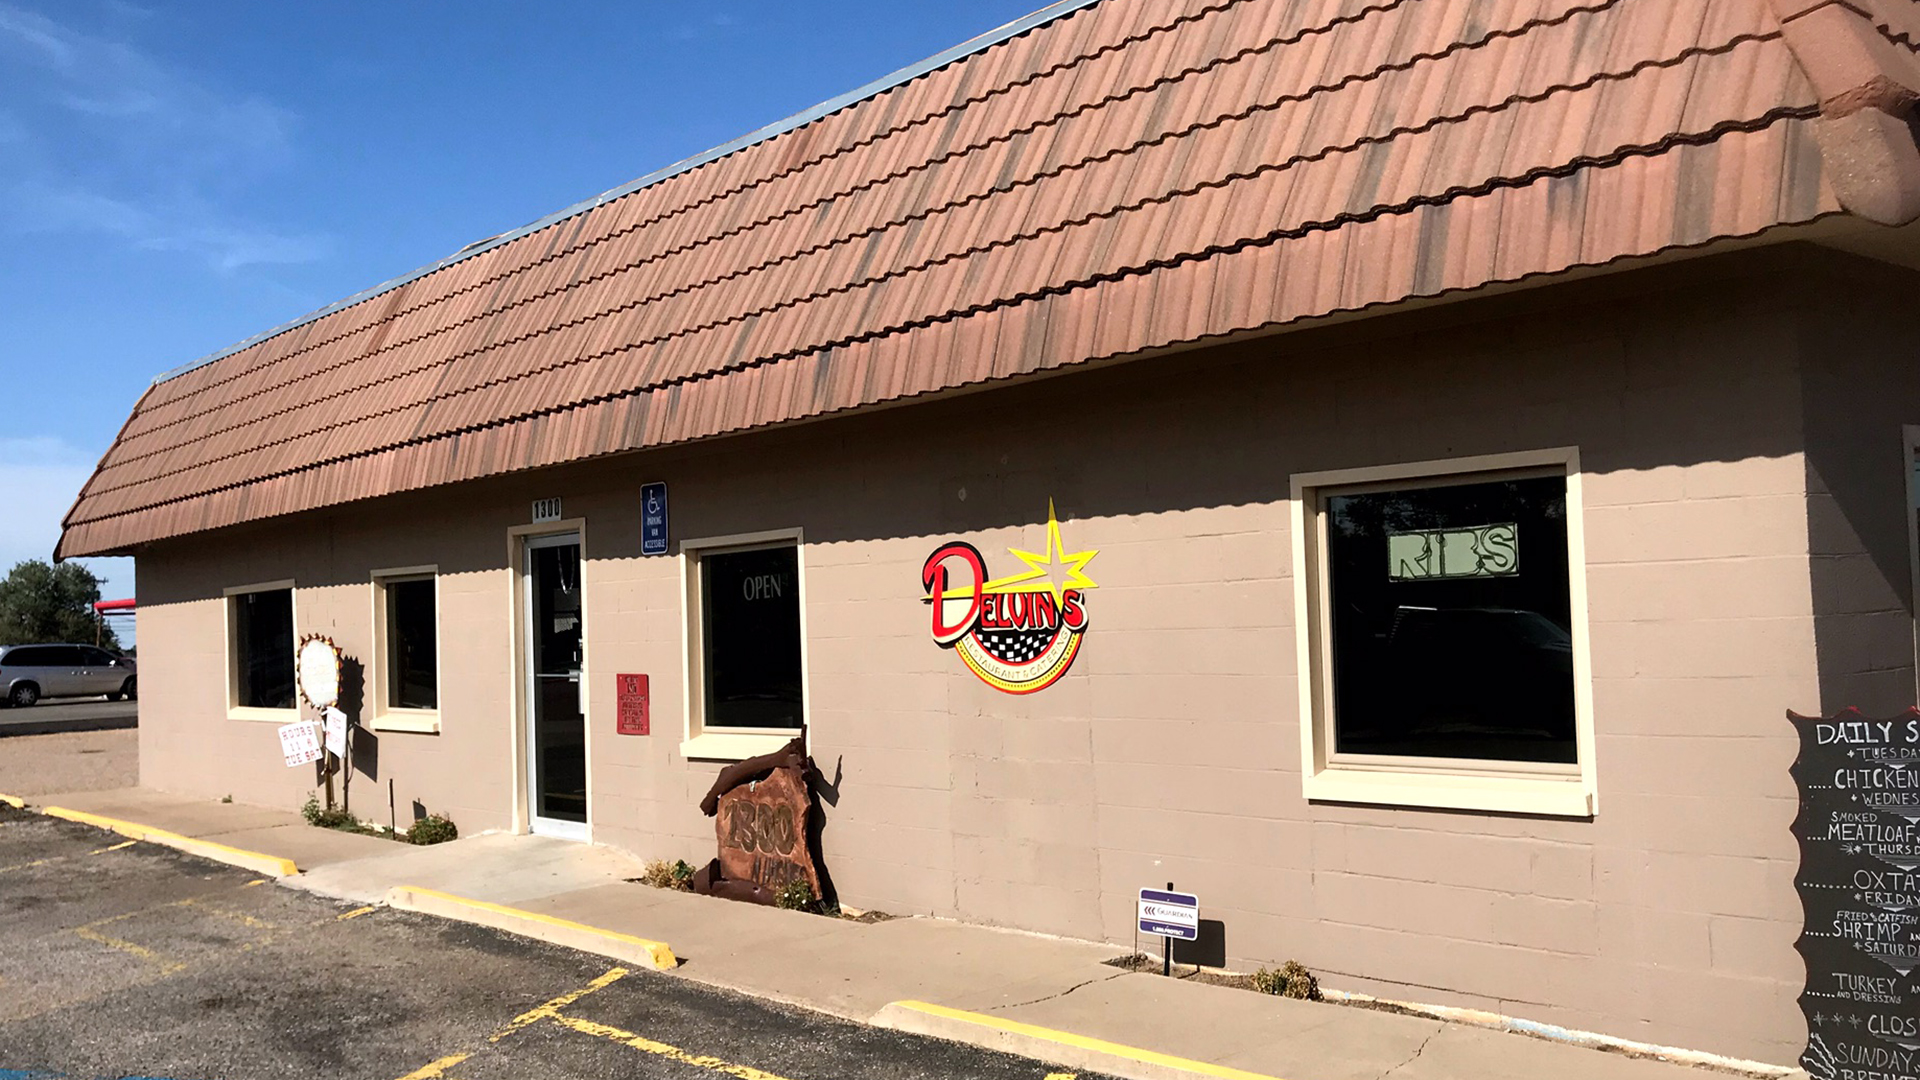 Delvin's doubles down on downtown